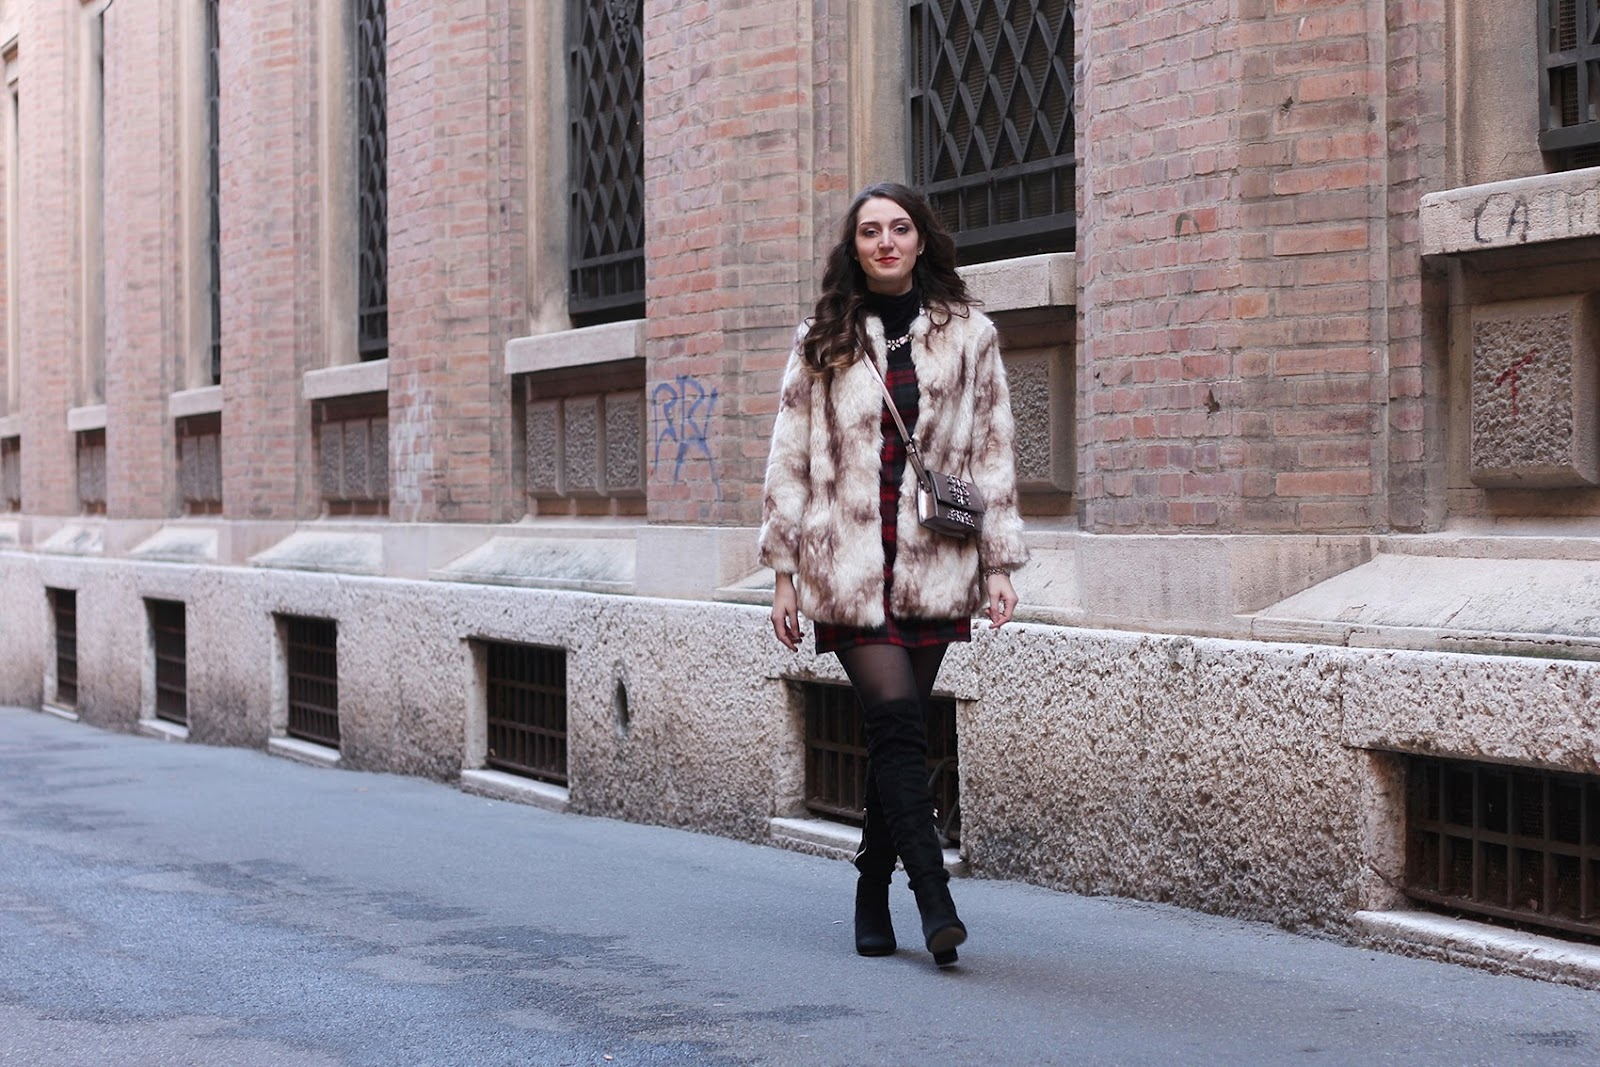 fashion blogger italy trend vogue outfit ootd faux fur pelliccia shoulder stones bag borsa tracolla silver pietre zara stradivarius cuissardes boots stivali tartan dress vestito black happiness boutique necklace collana